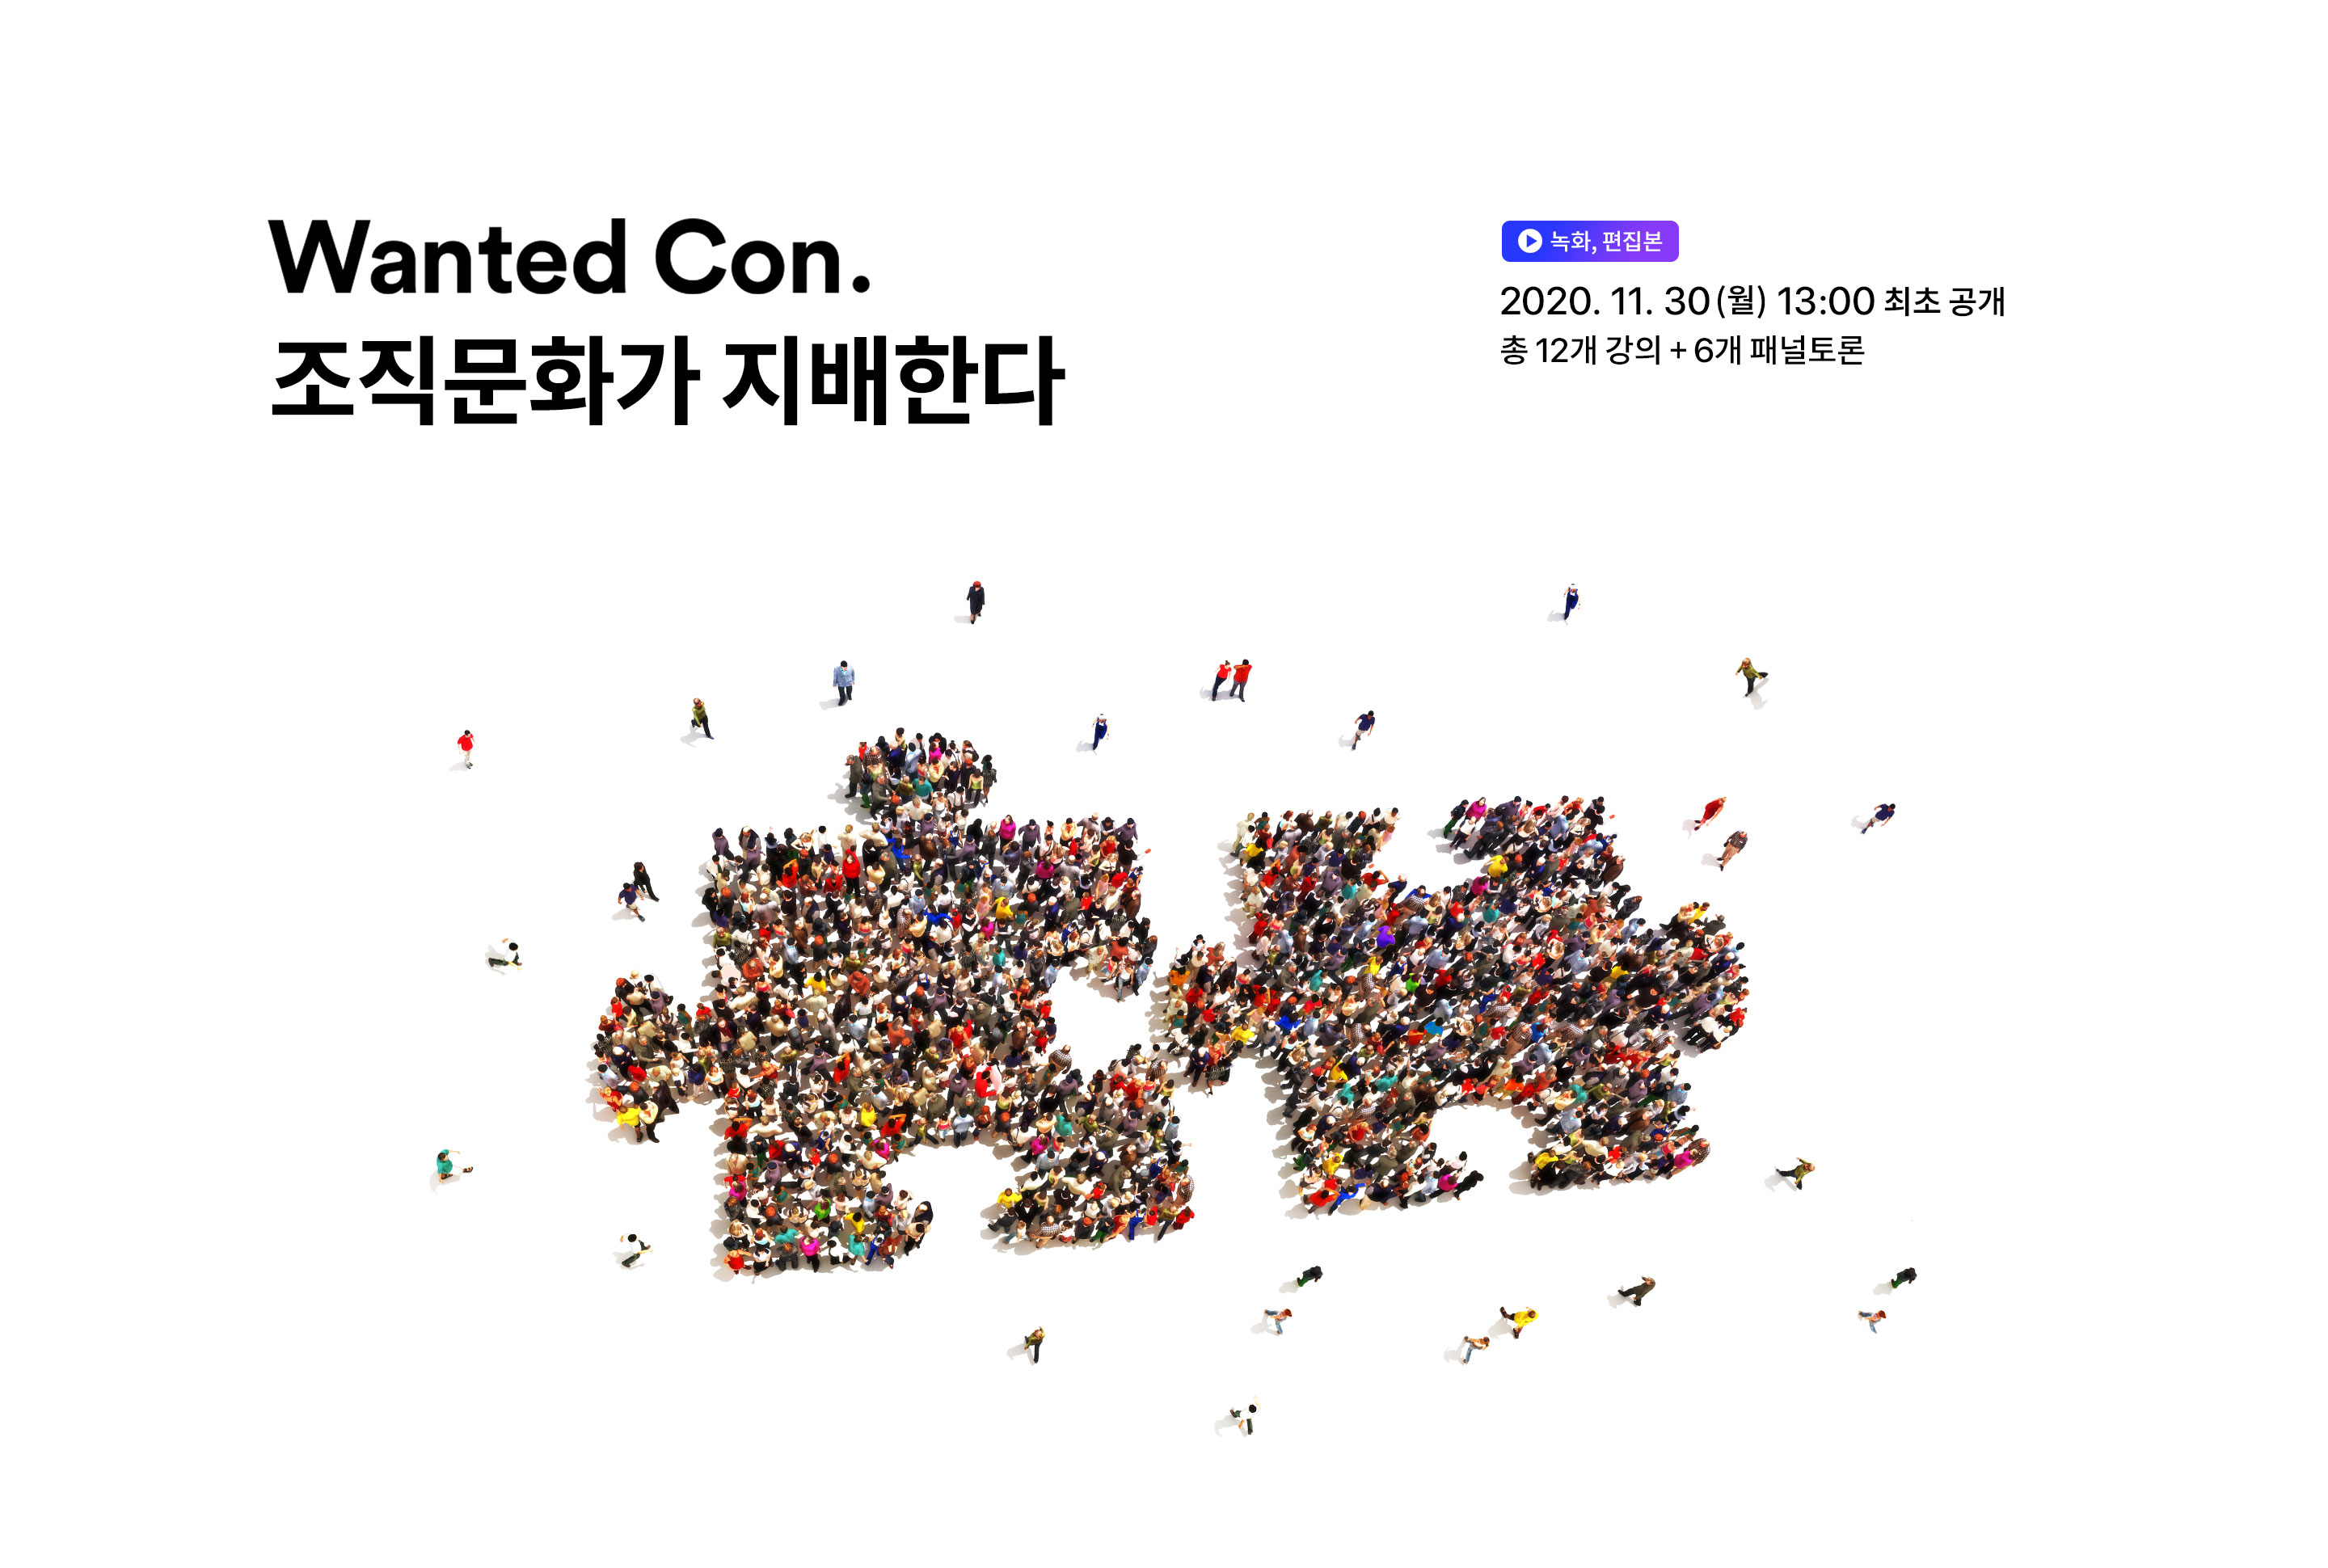 https://static.wanted.co.kr/images/events/975/343ef50c.jpg